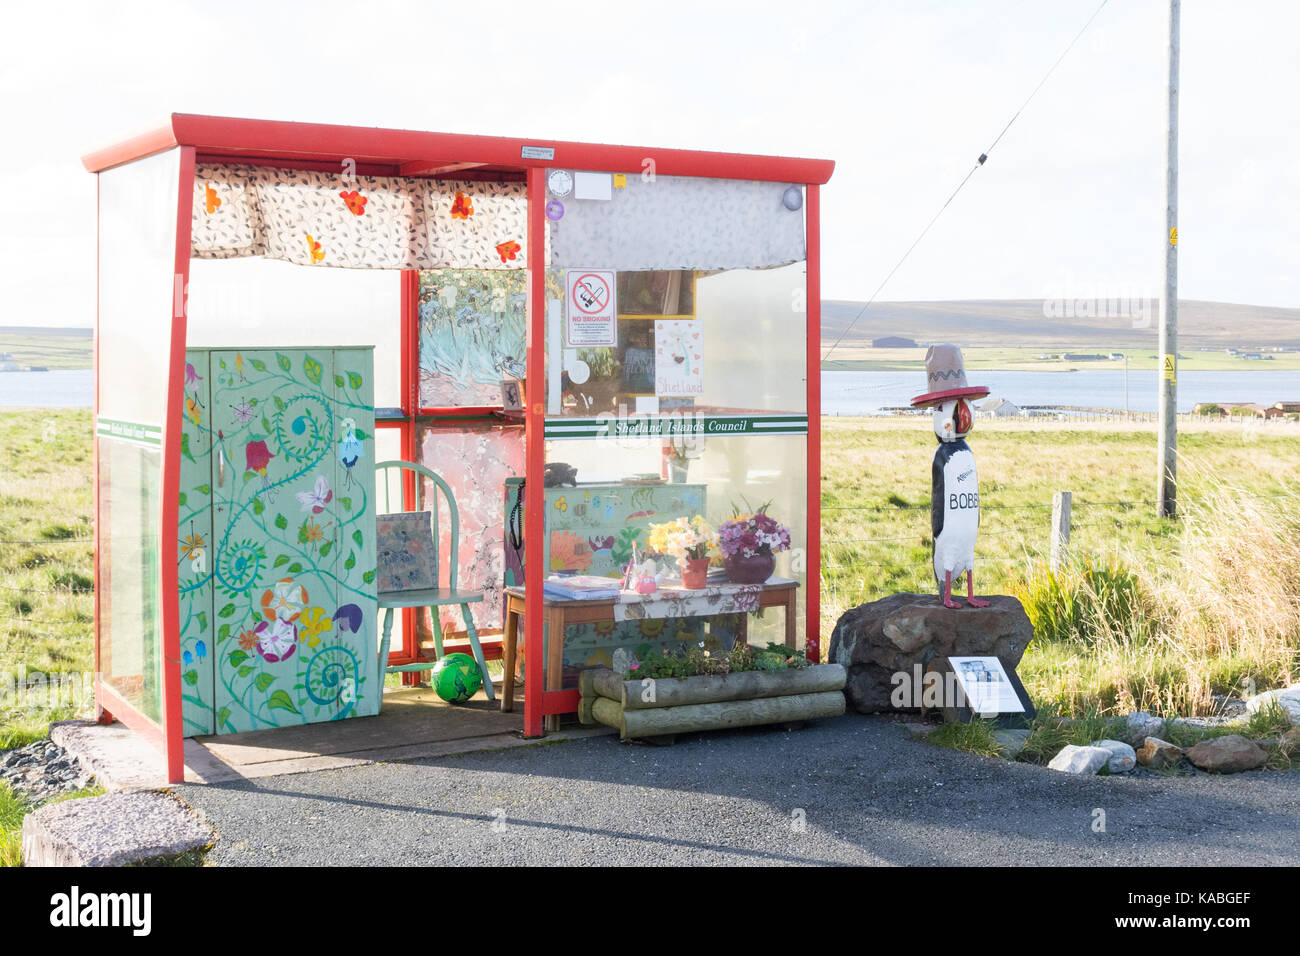 Bobby's bus stop - an unusual tourist attraction in Unst, Shetland Islands, Scotland, UK - Stock Image